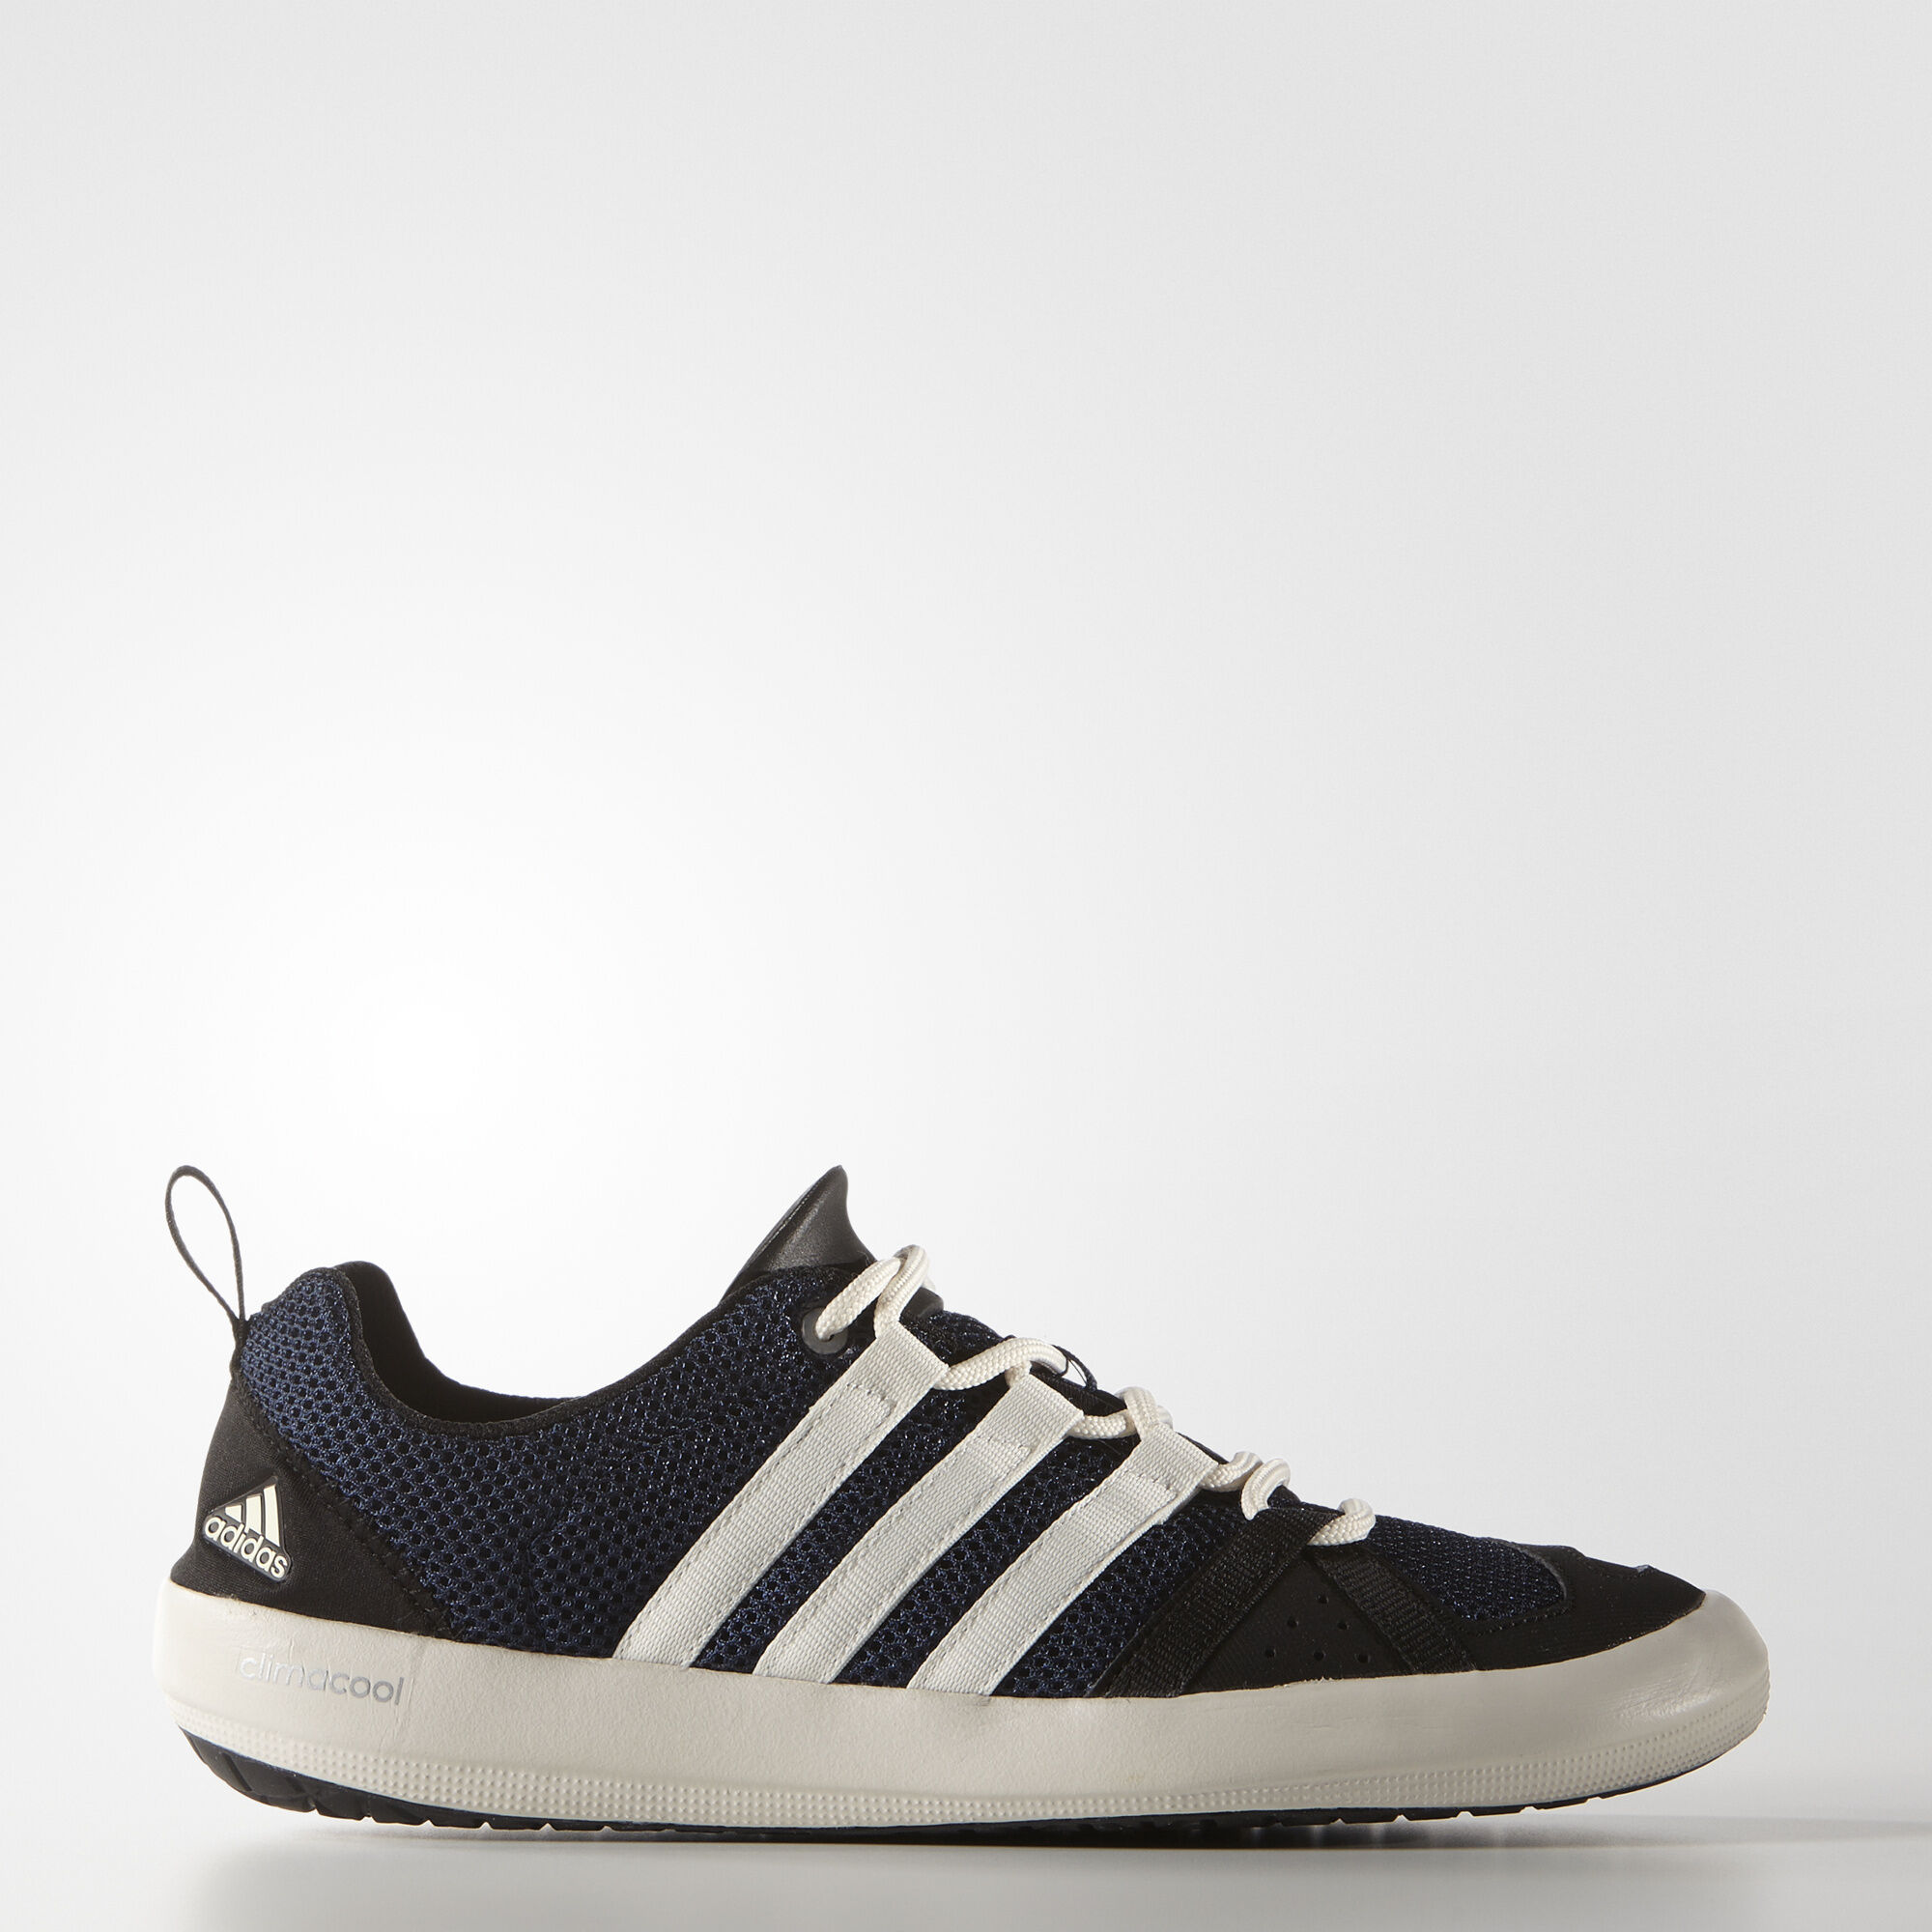 Adidas Climacool Boat Lace chaussures